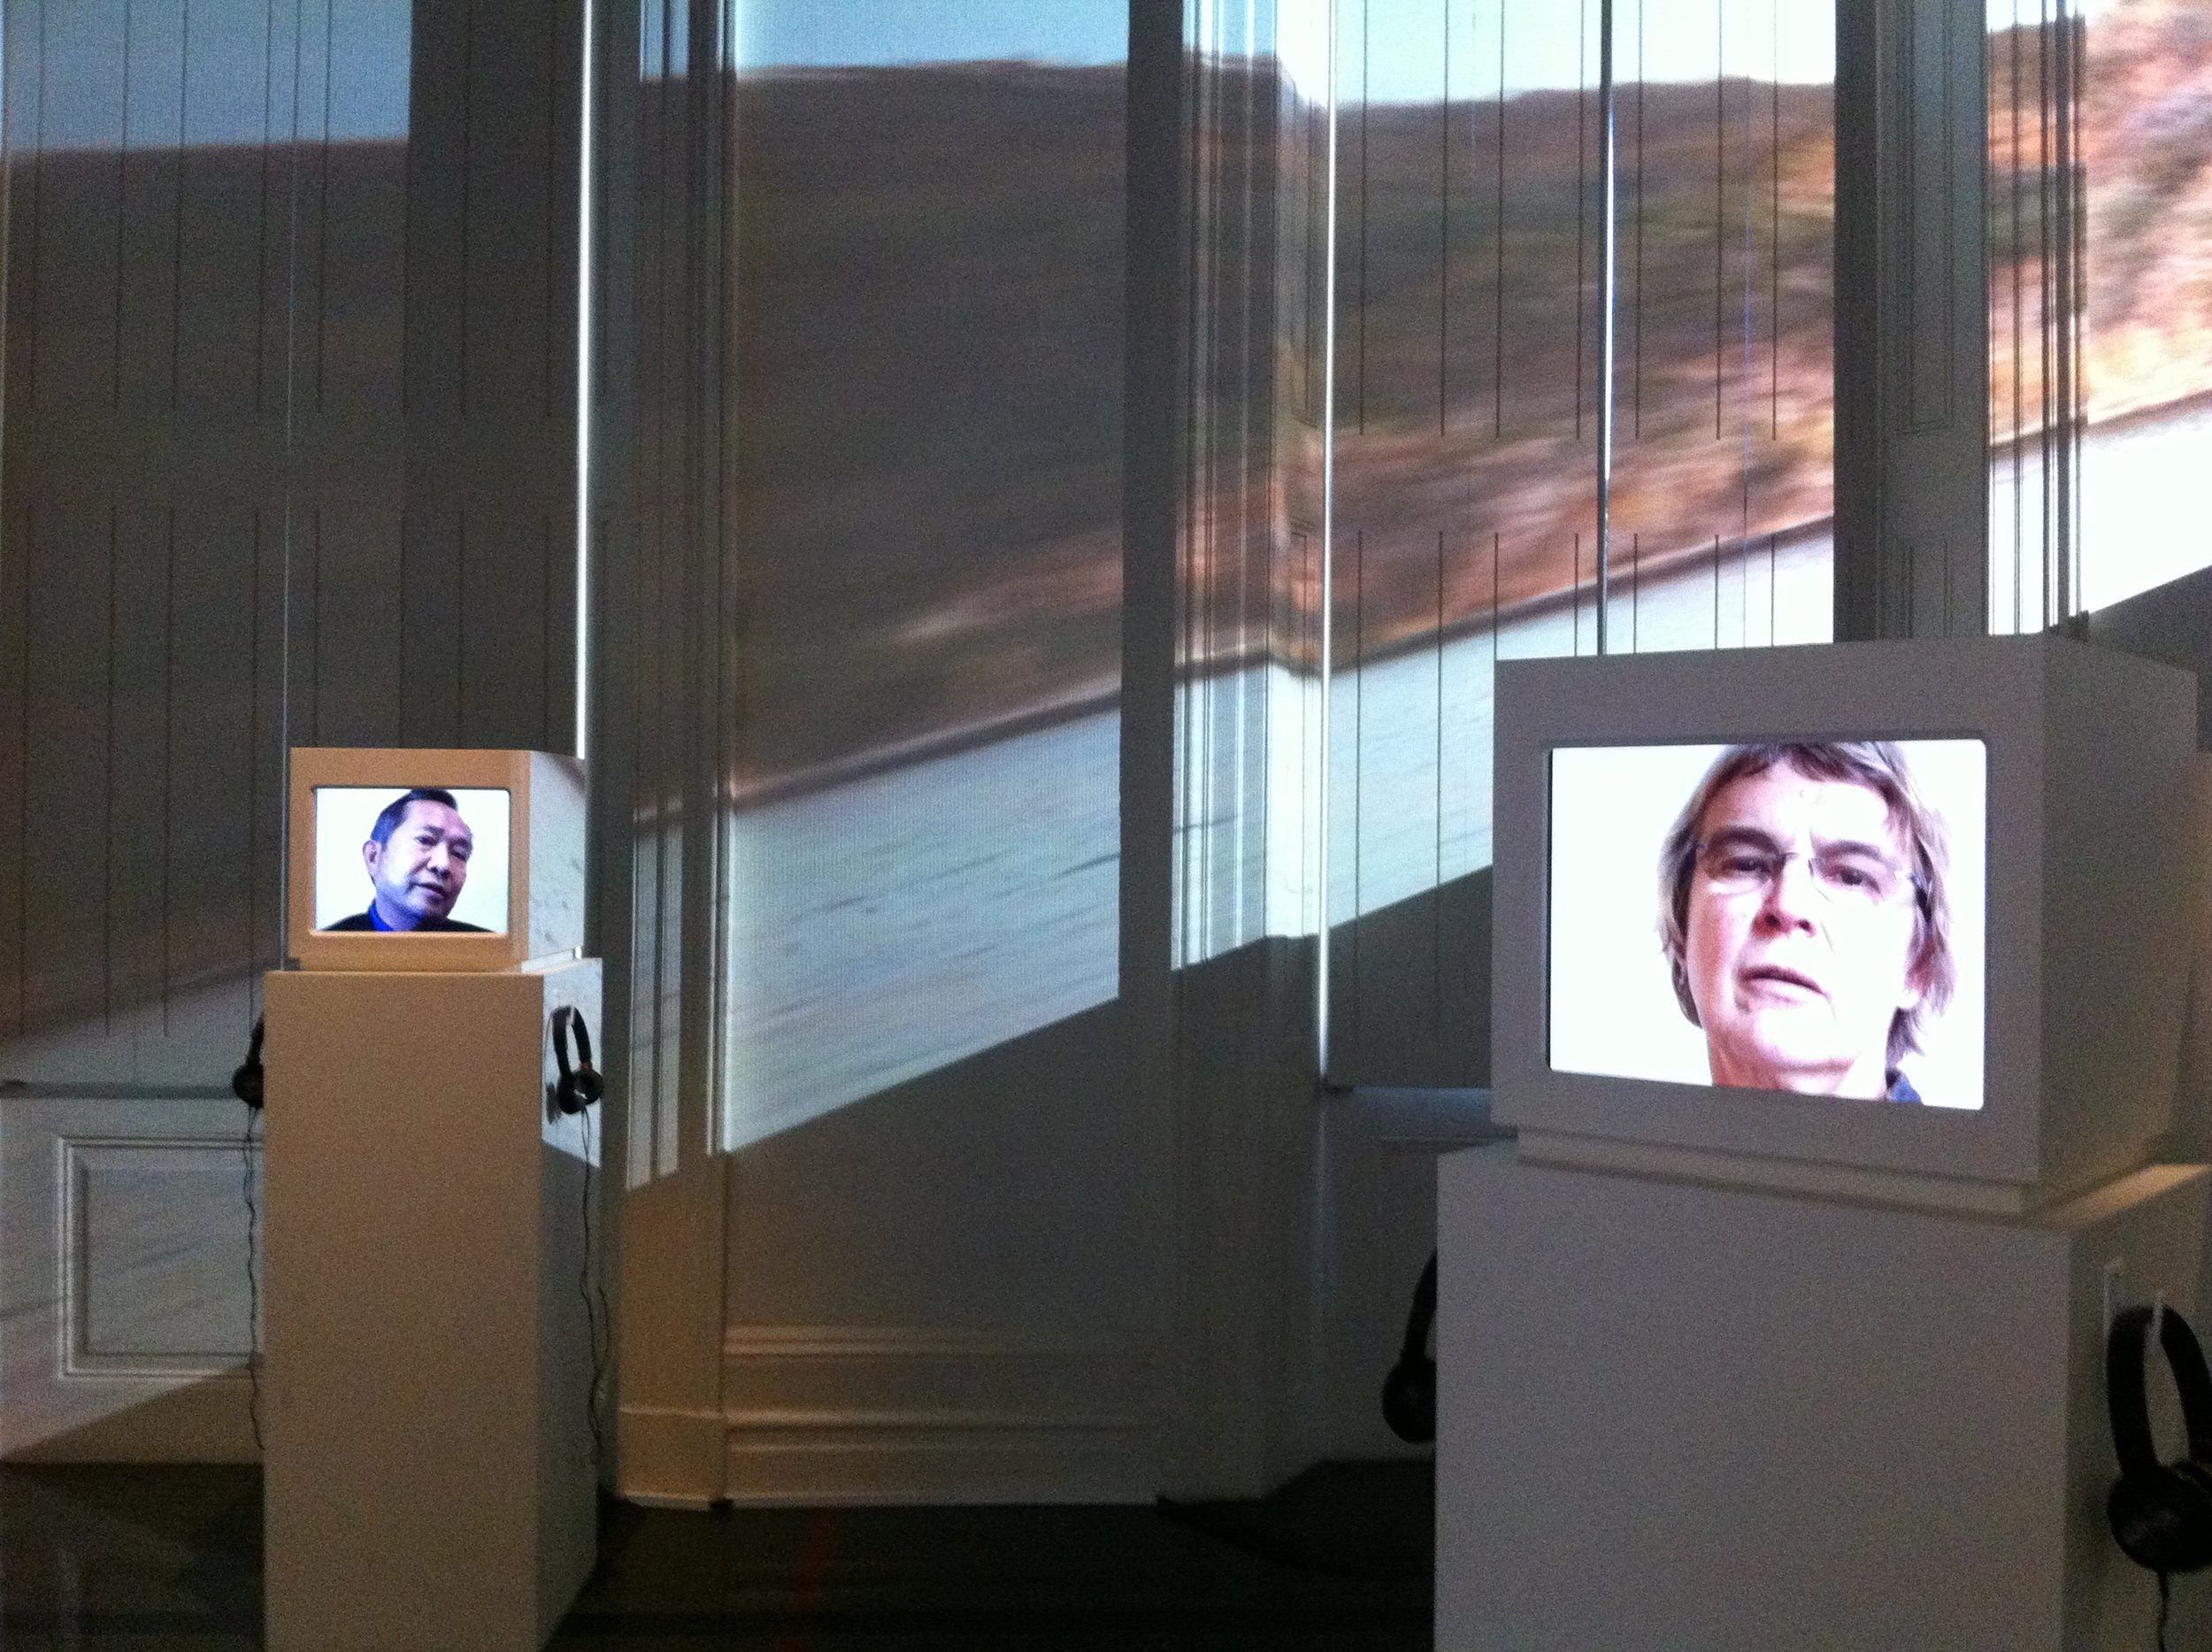 Wendy Woodson, Transitions Project, Digital video and projection installation